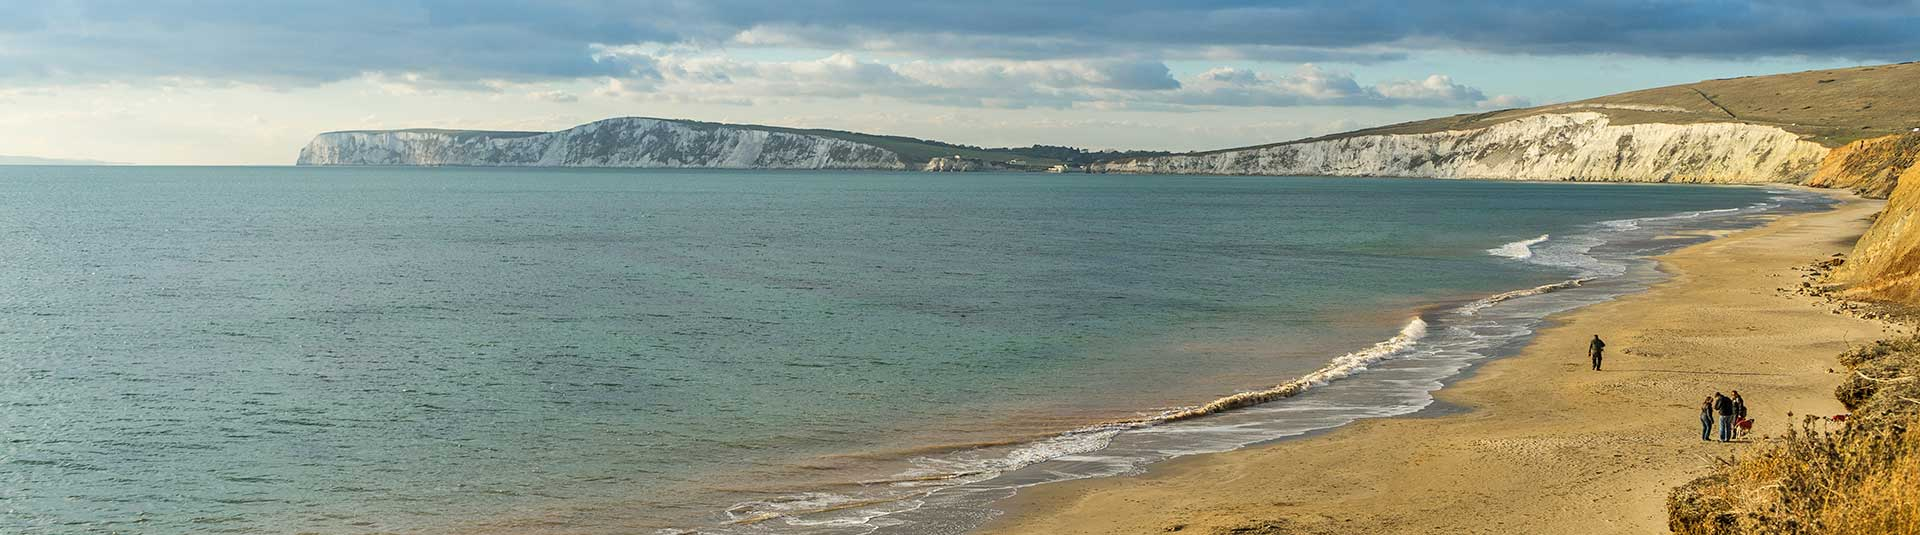 Sea side walks on the Isle of Wight